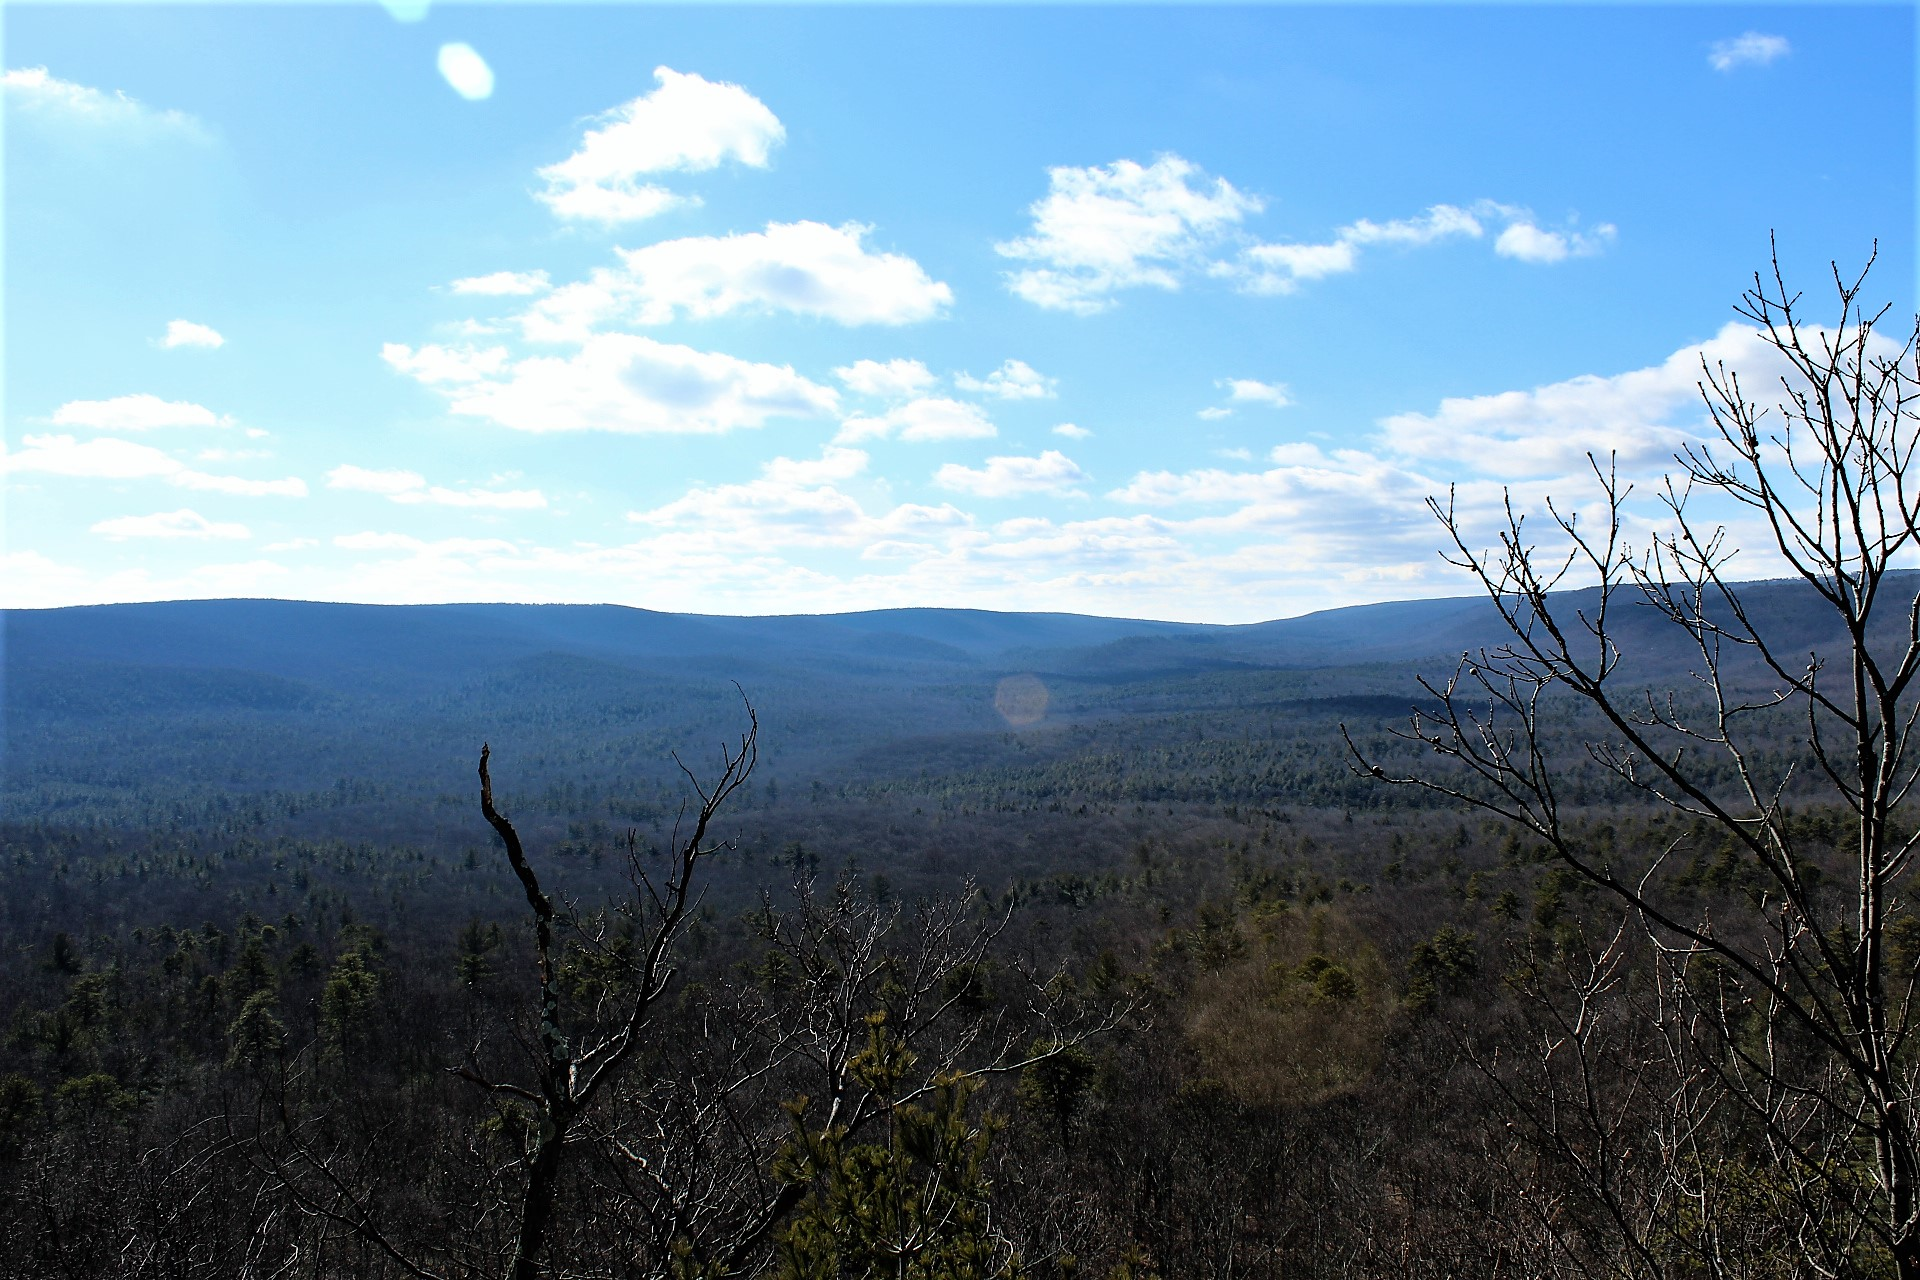 View from the Lookout Point